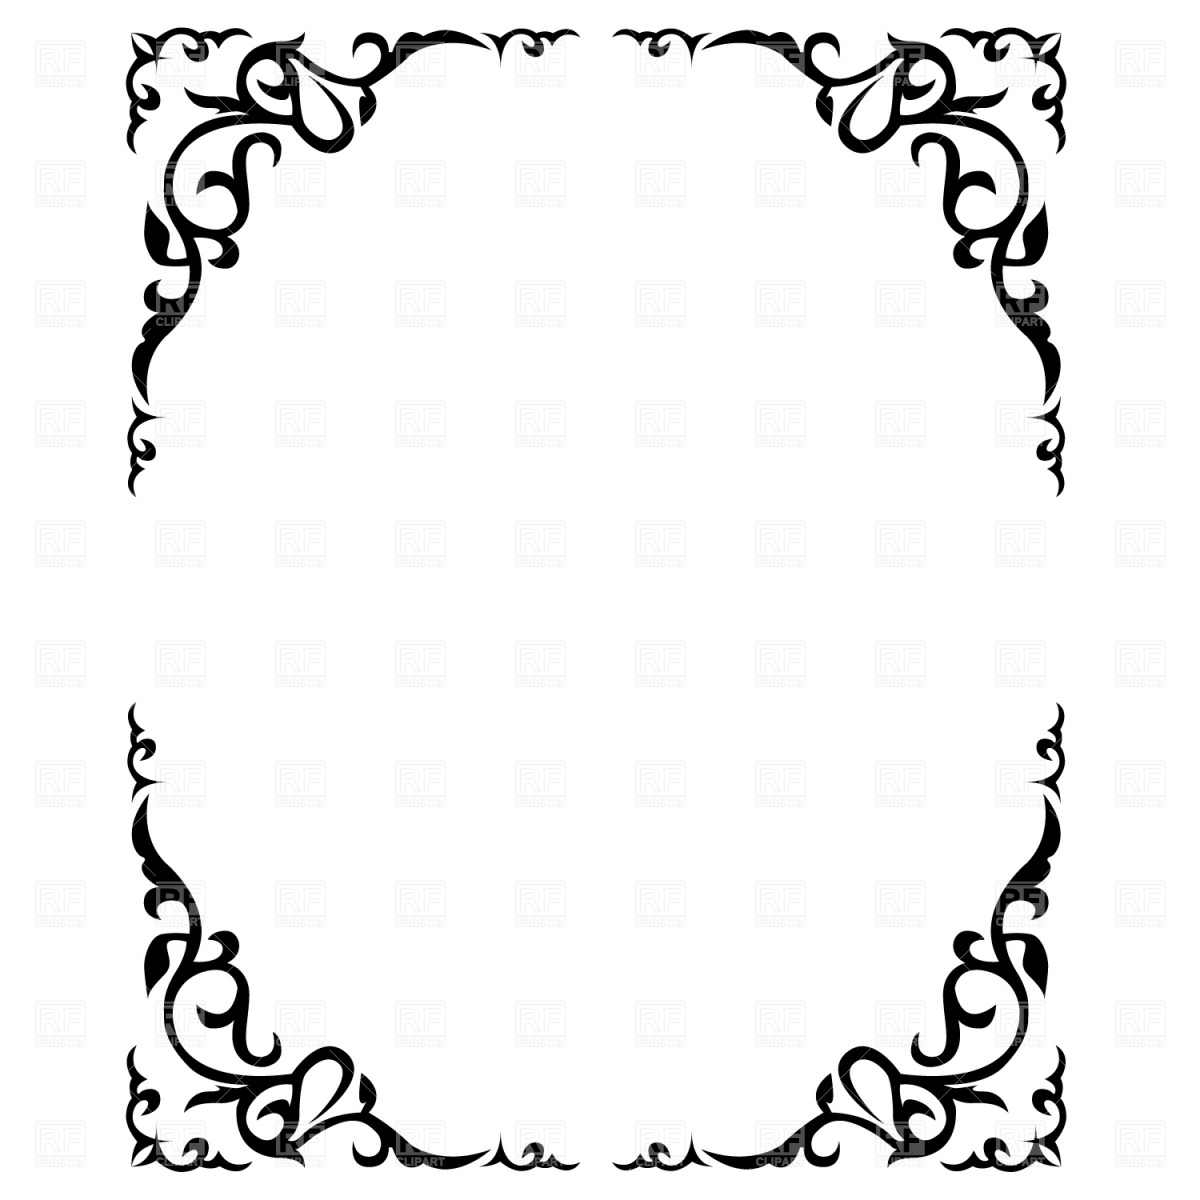 Free Printable Borders and Frames Clip Art